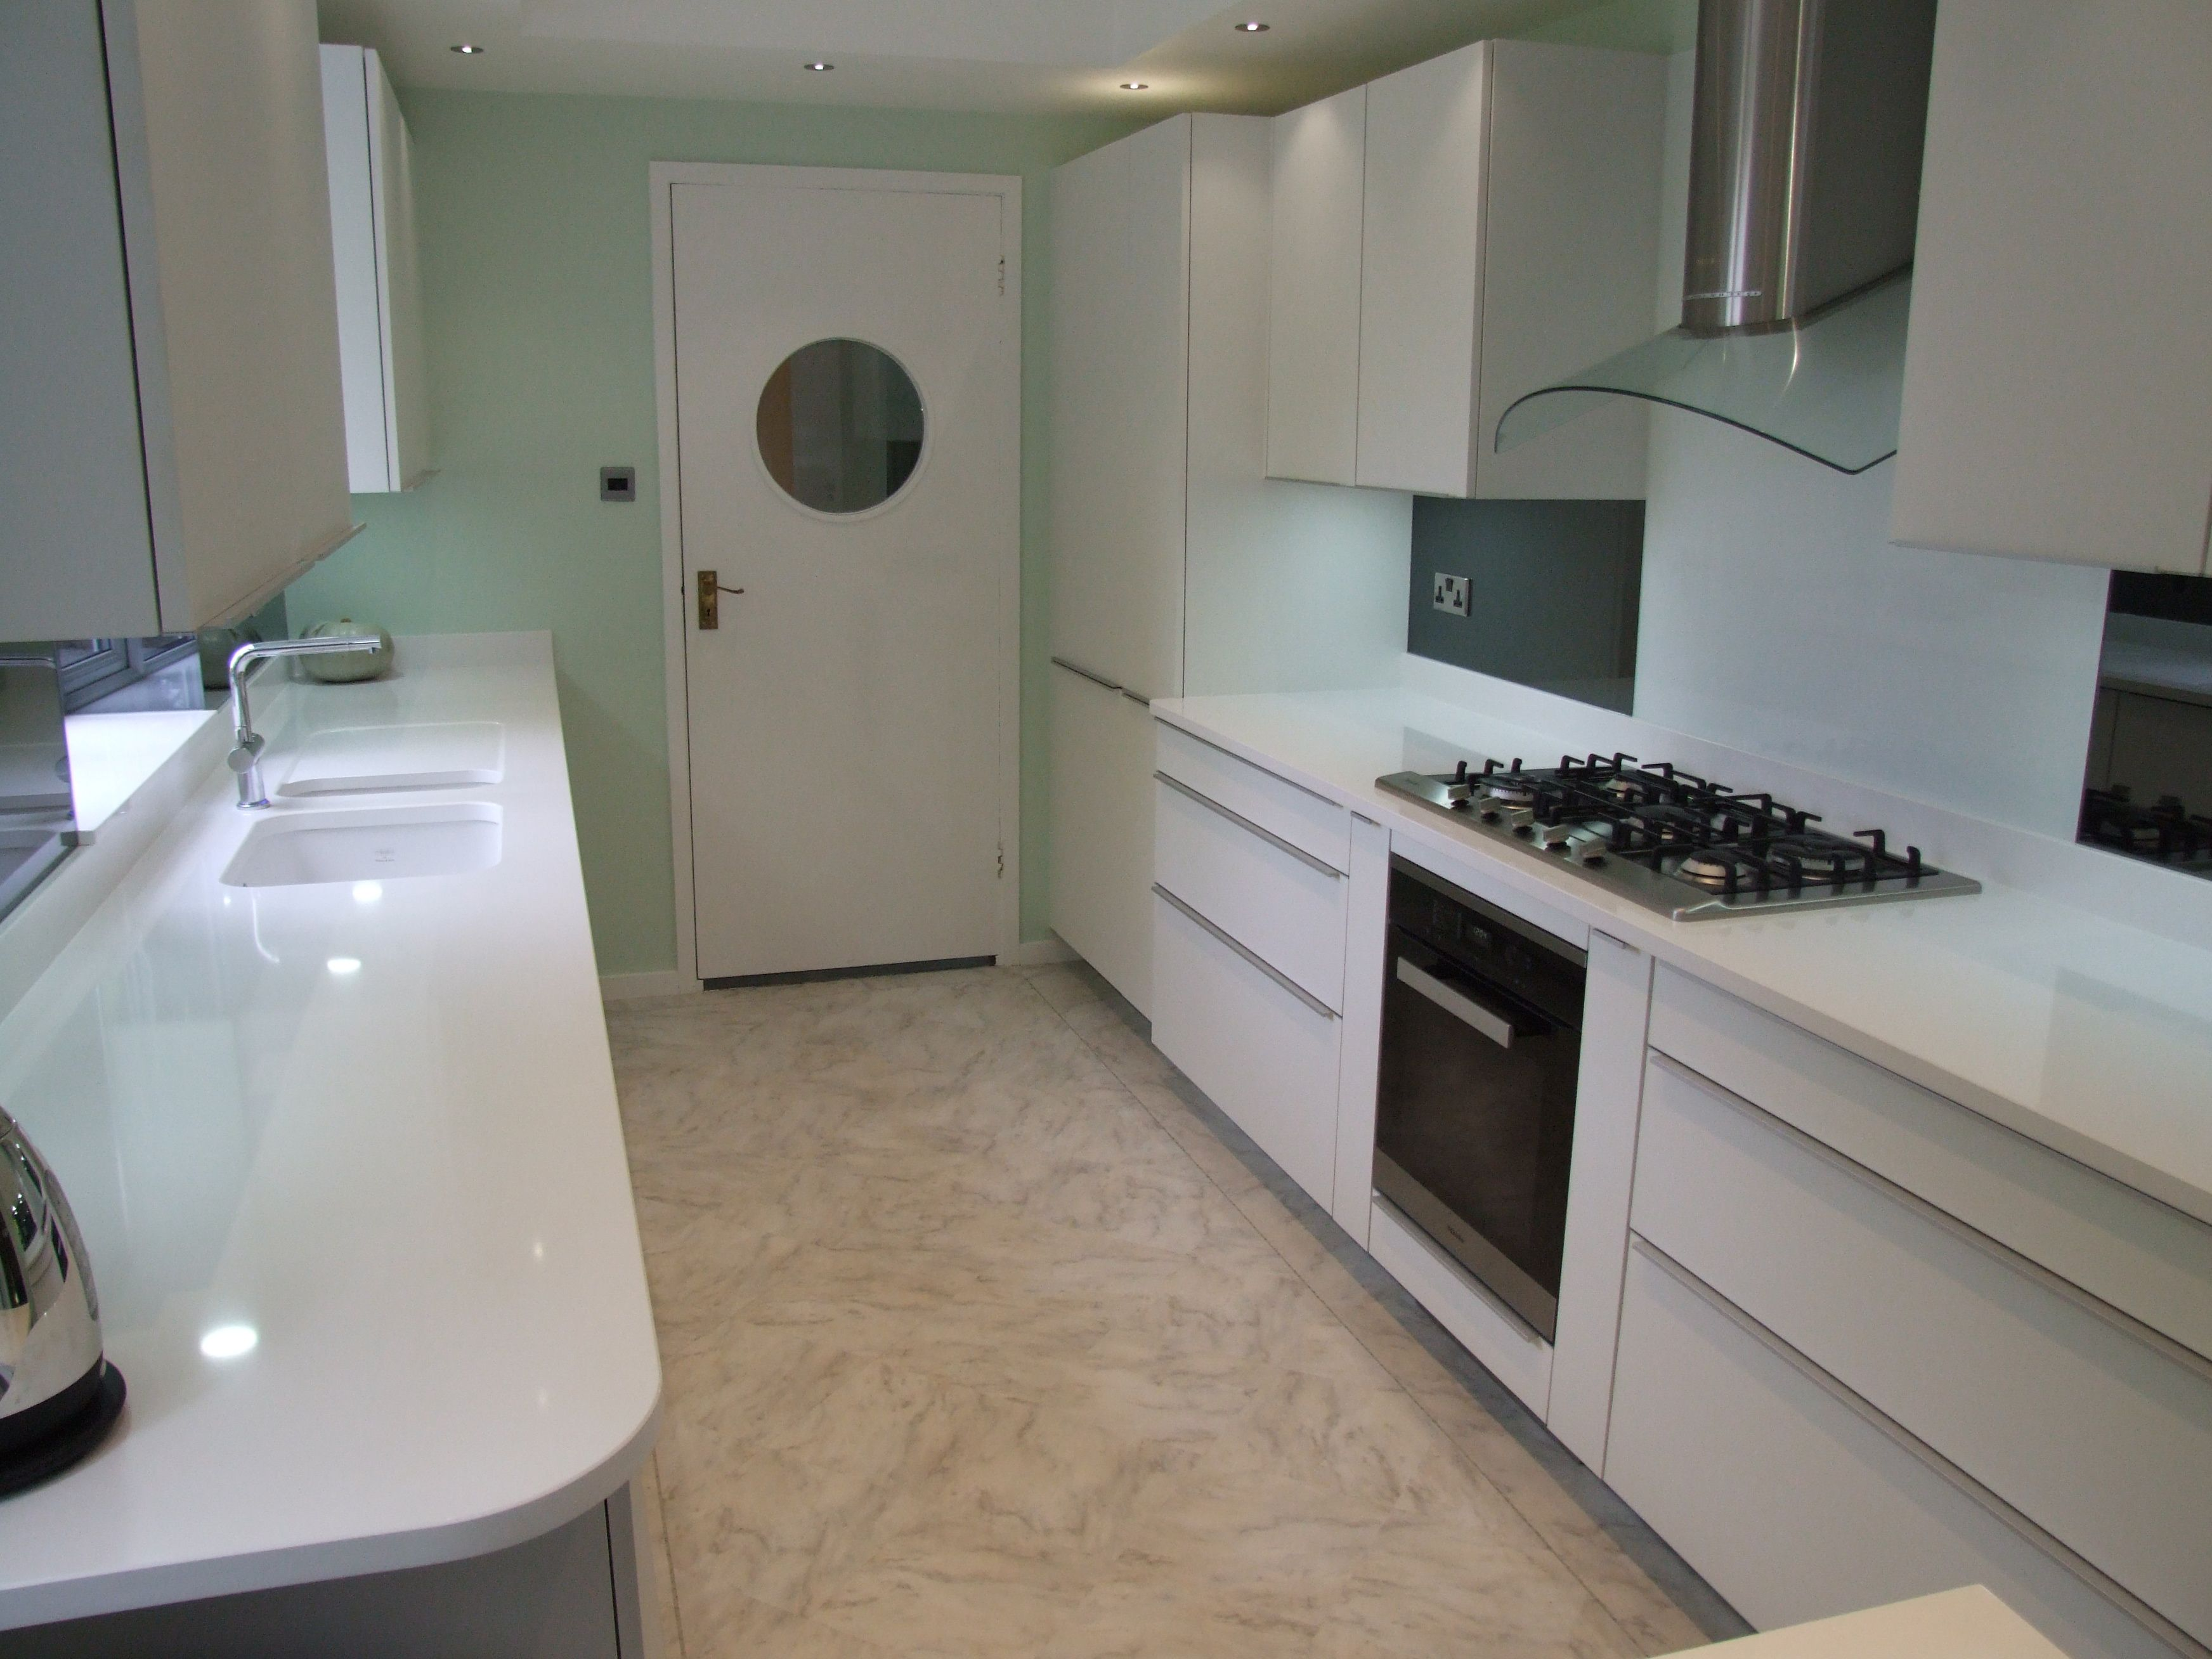 Galley Kitchen Ideas That Work For Rooms Of All Sizes: This Galley Kitchen Features Matt Polar White Poggenpohl